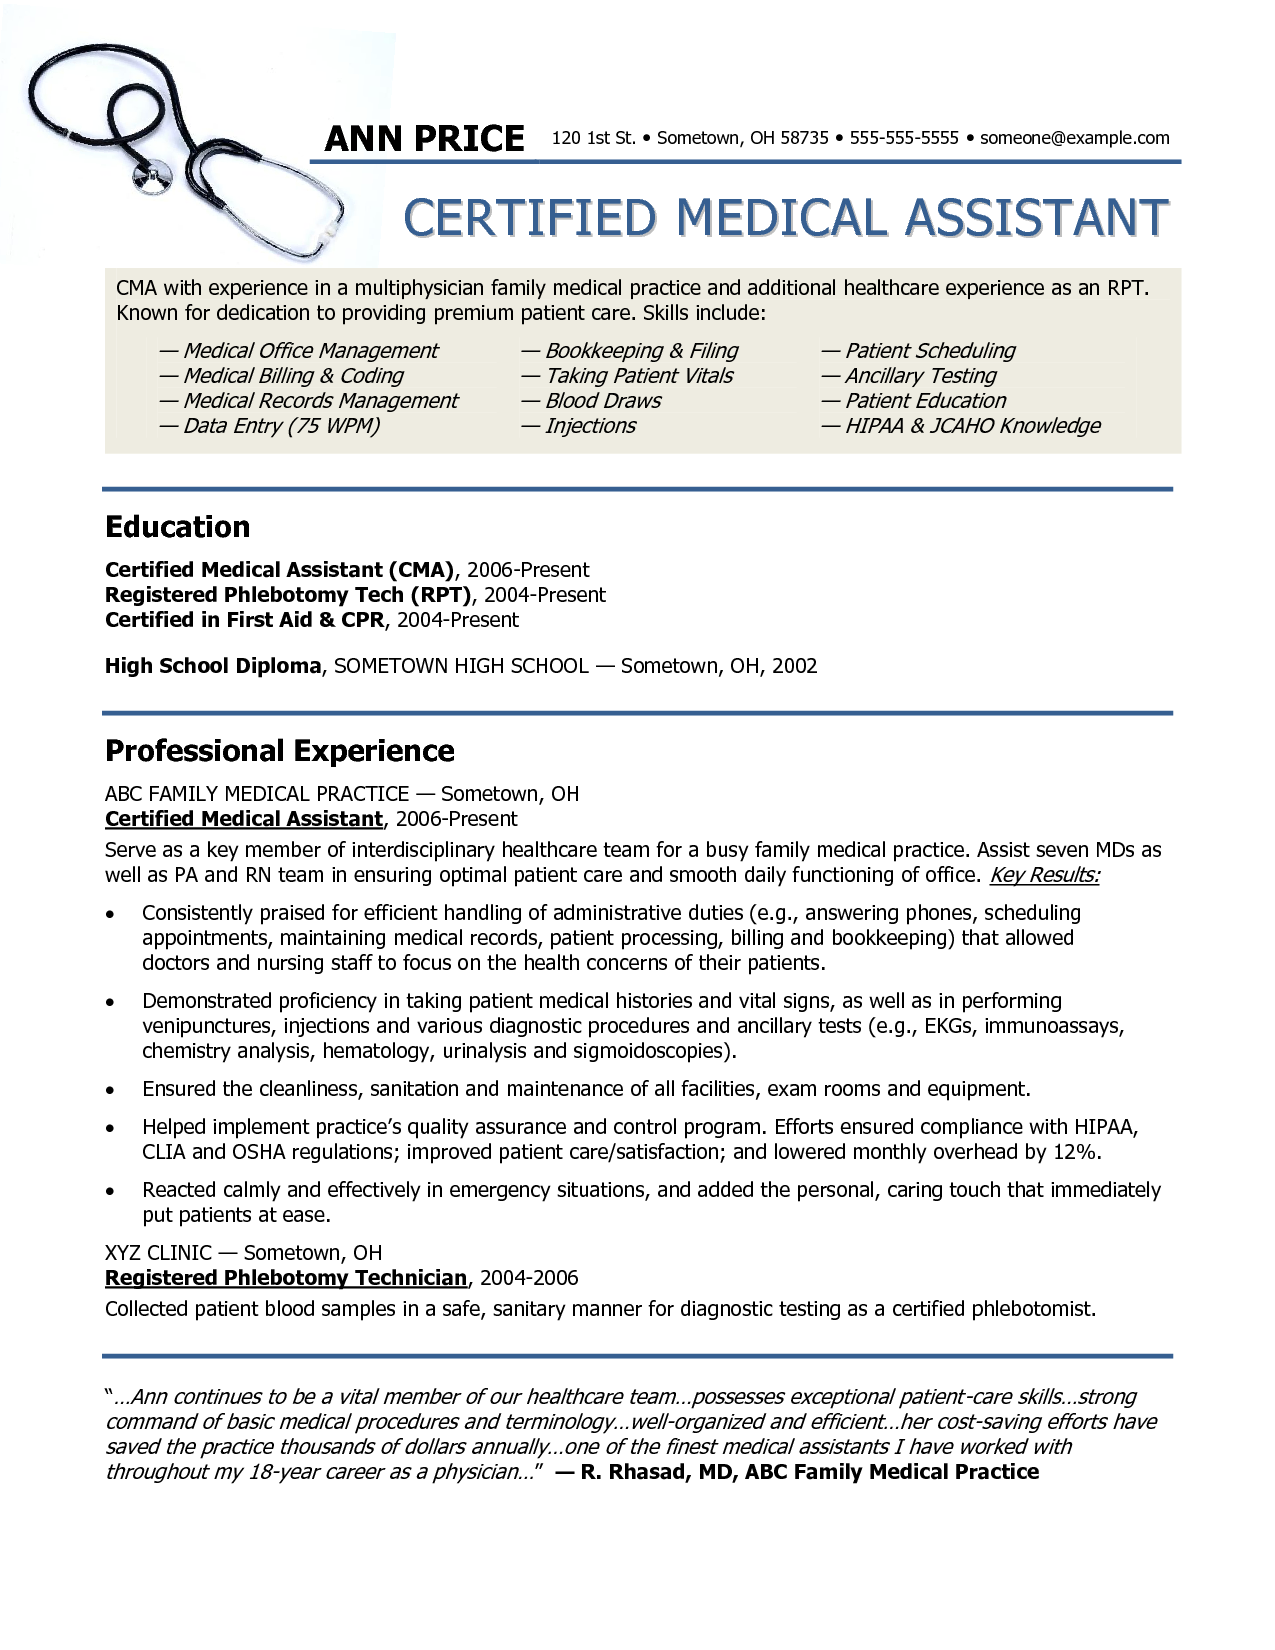 essay on medical assistant duties